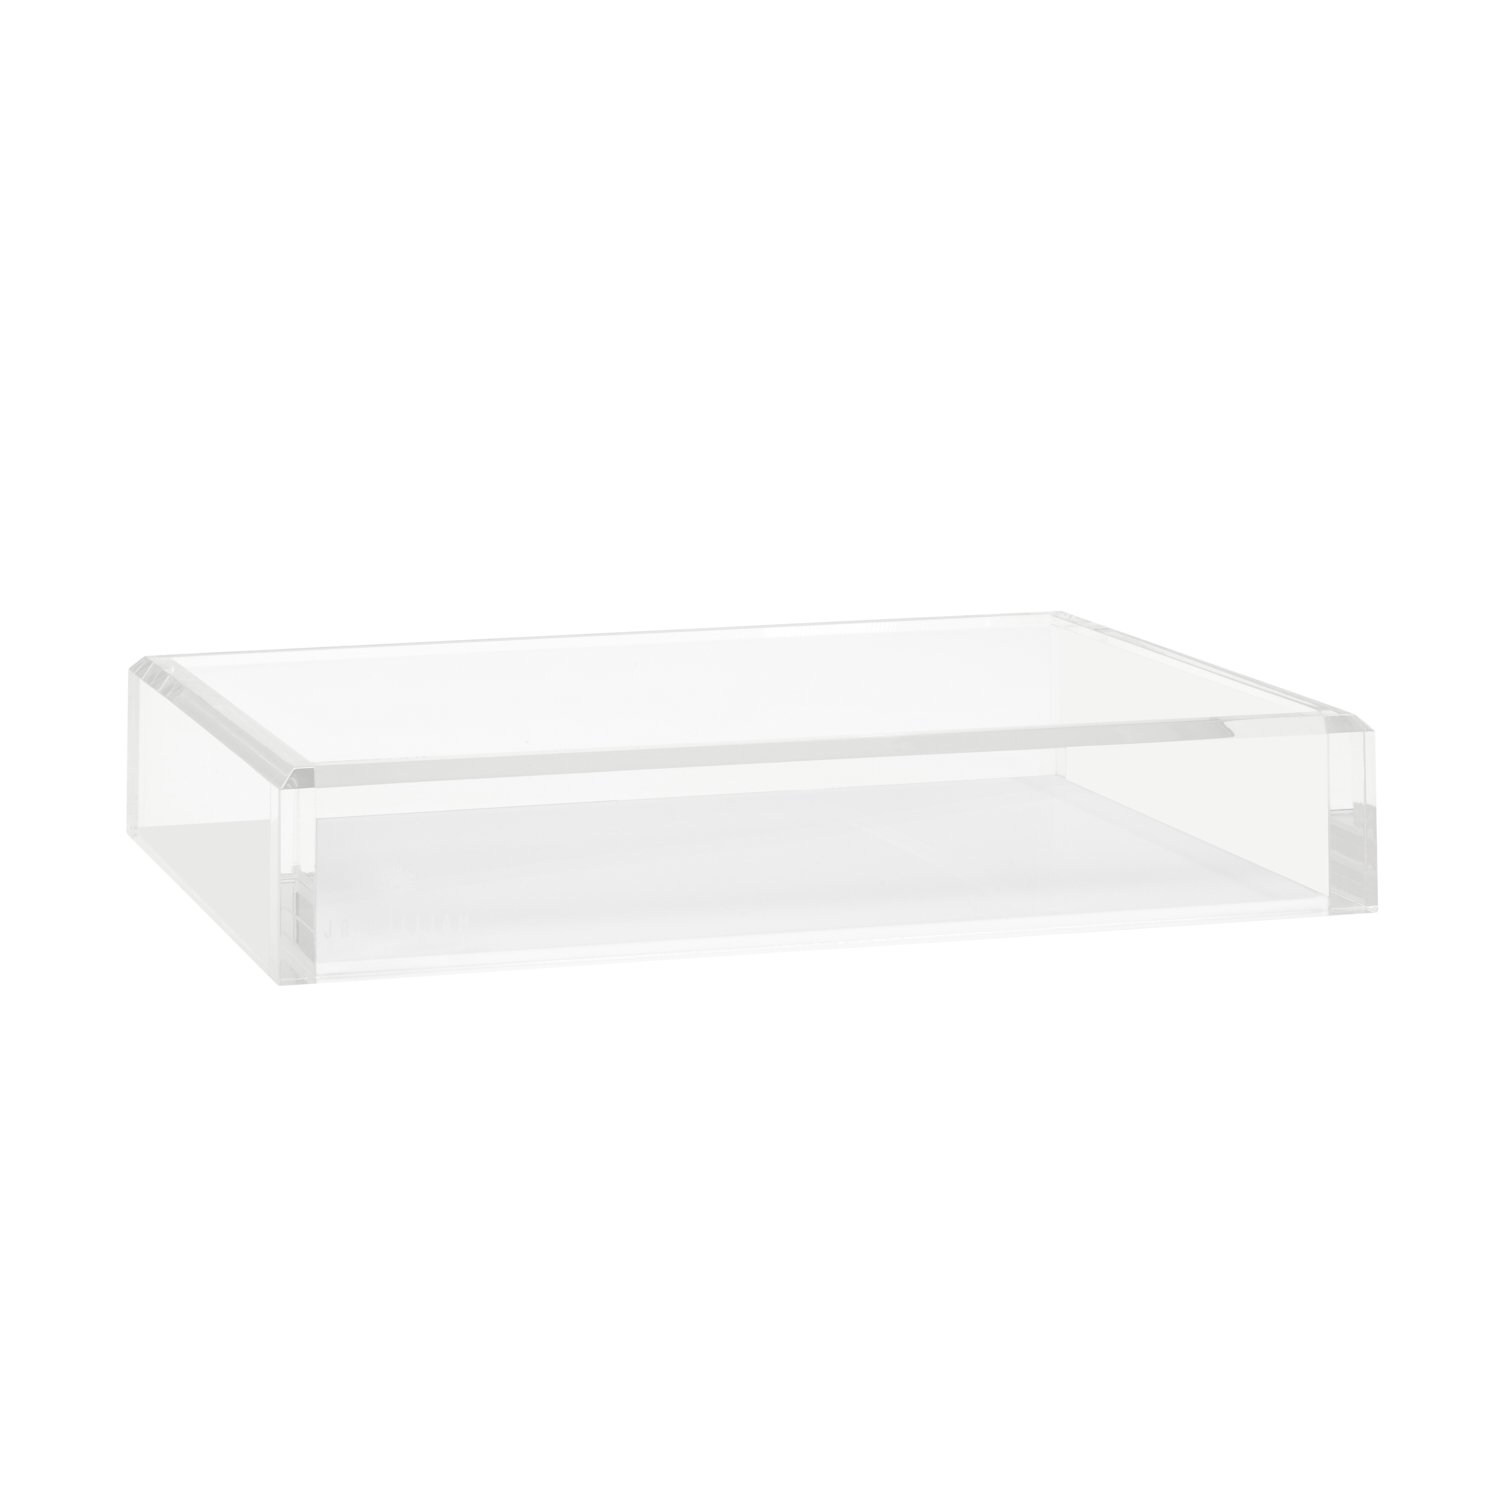 JR William Modern Decor Acrylic Tray, Authentic Acrylic Crystal Clear & Hamptons White Tray, Decorative Tray, Vanity Tray, Valet + Dresser Organizer Tray in Luxury Gift Box Packaging by JR William